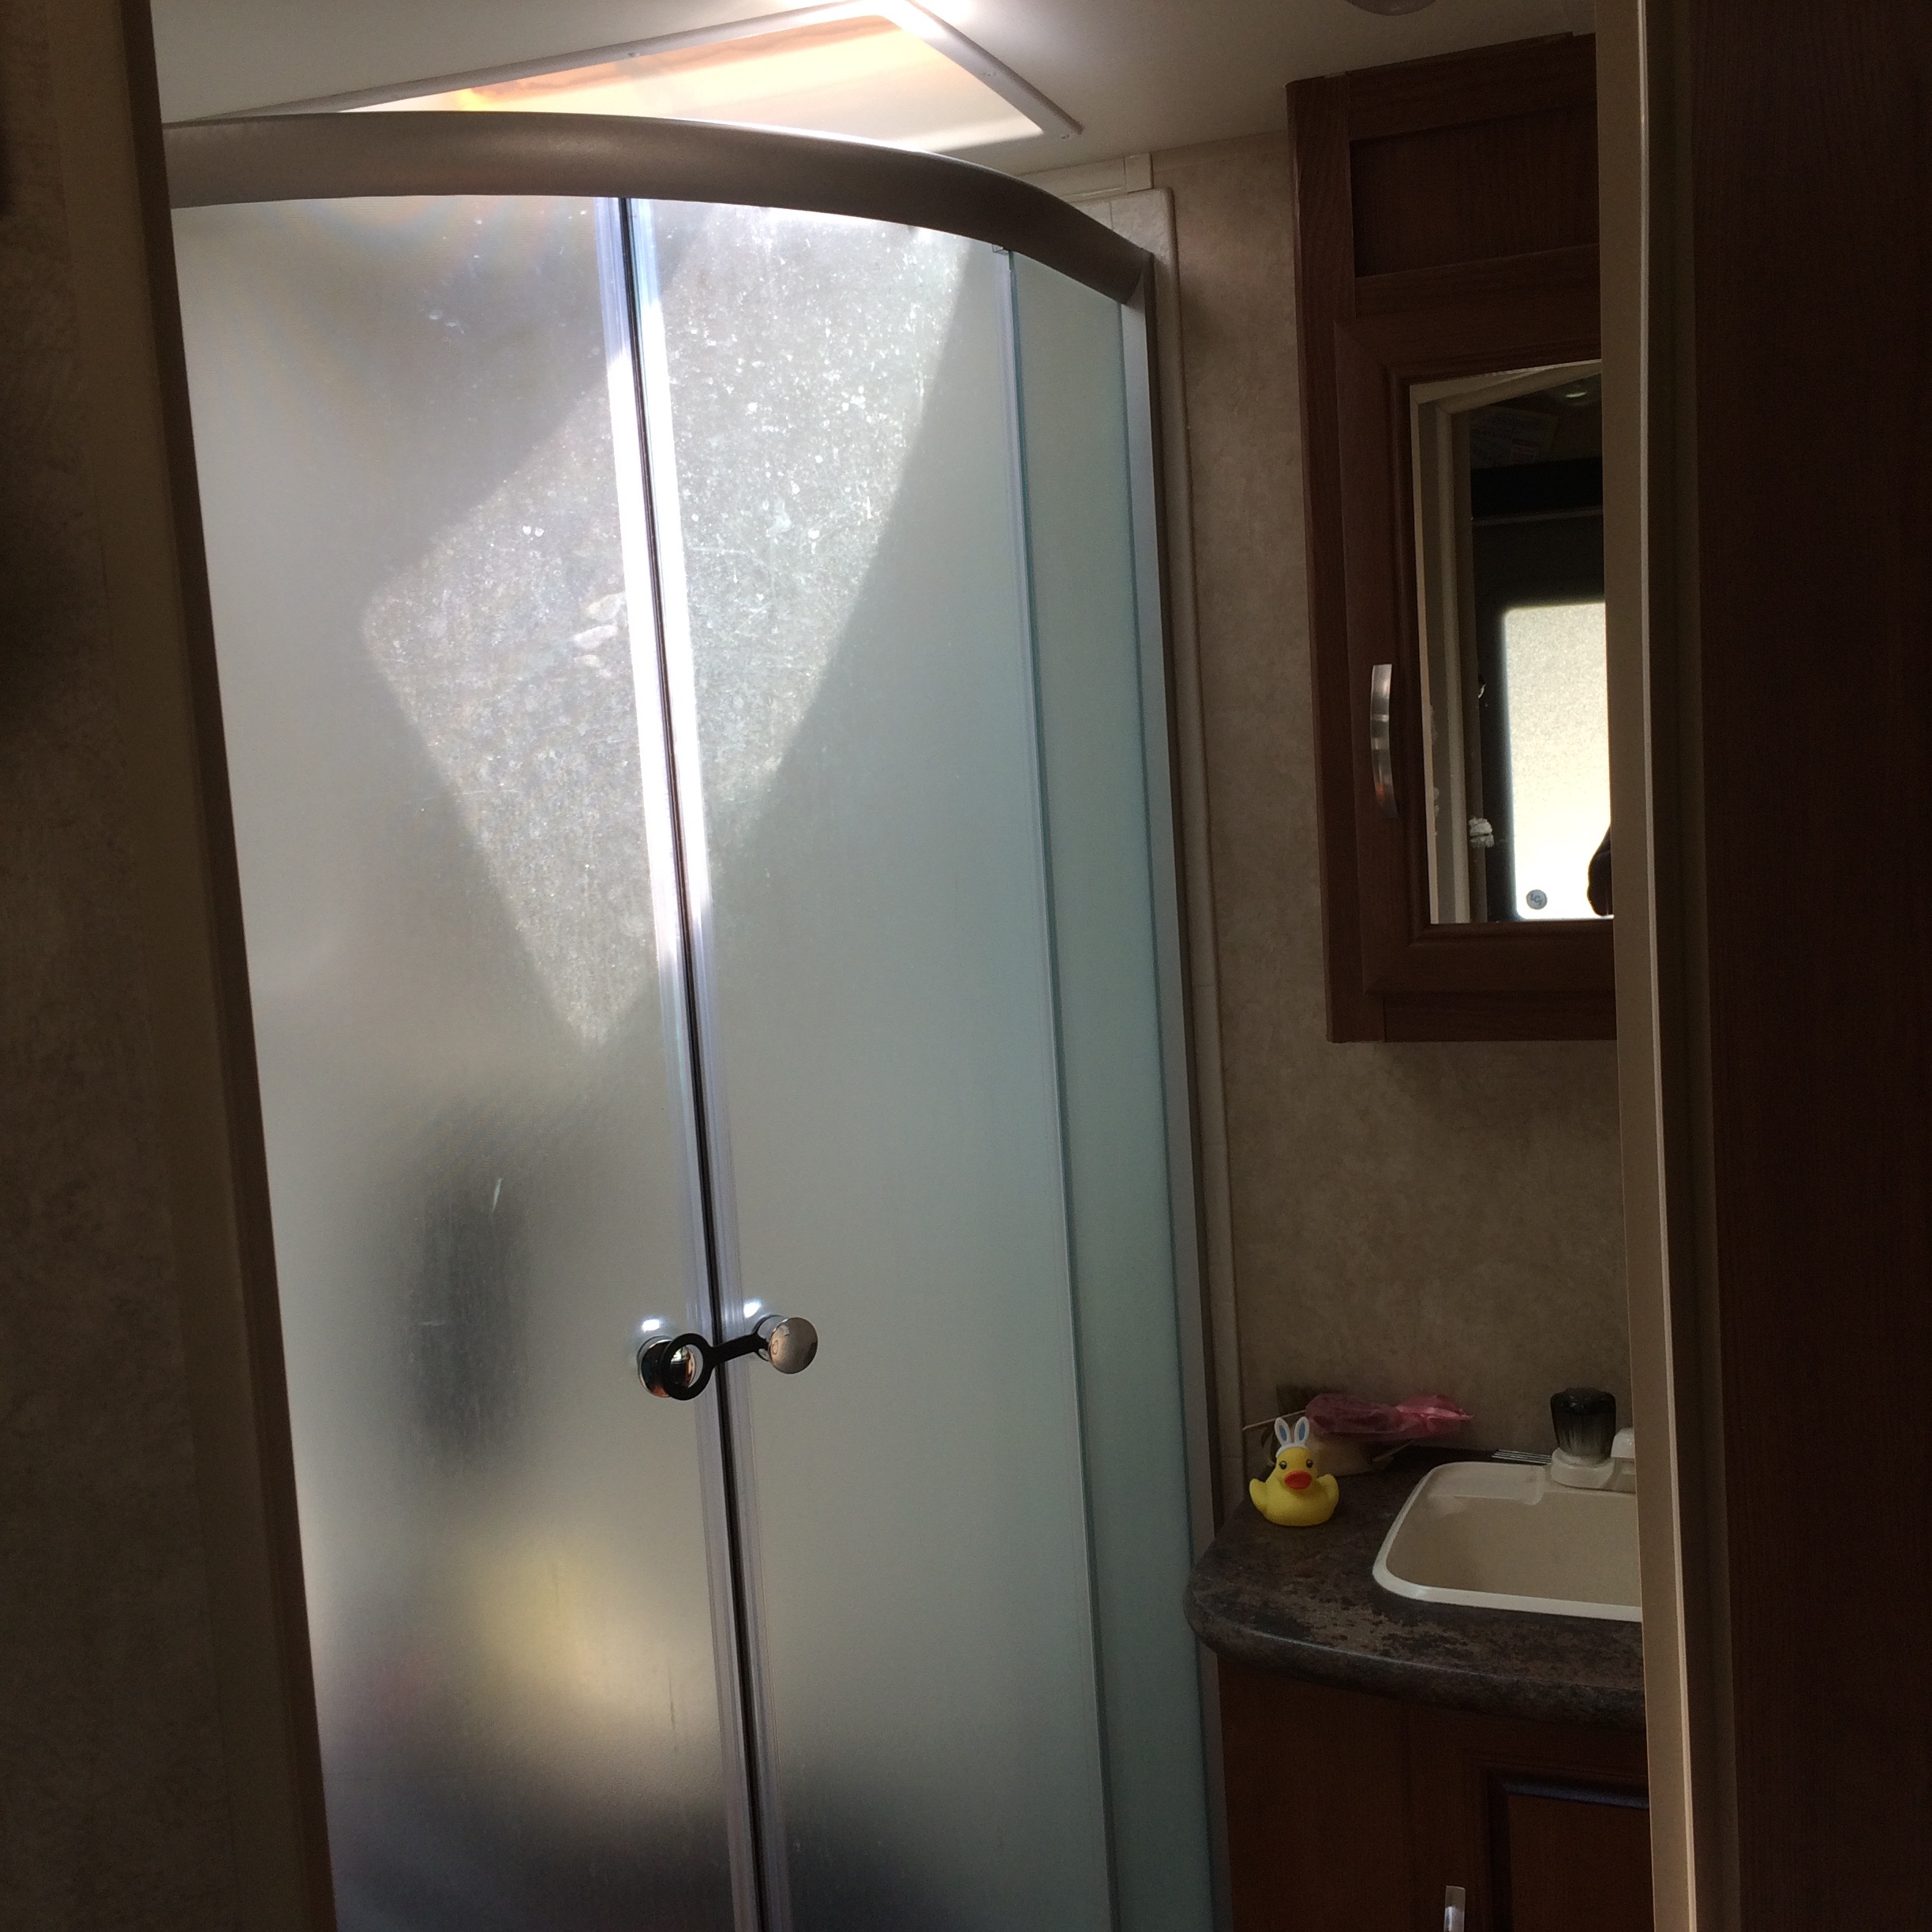 Surprisingly nice shower for such a little space. I hate being touched by shower curtains so I LOVE these doors!!!